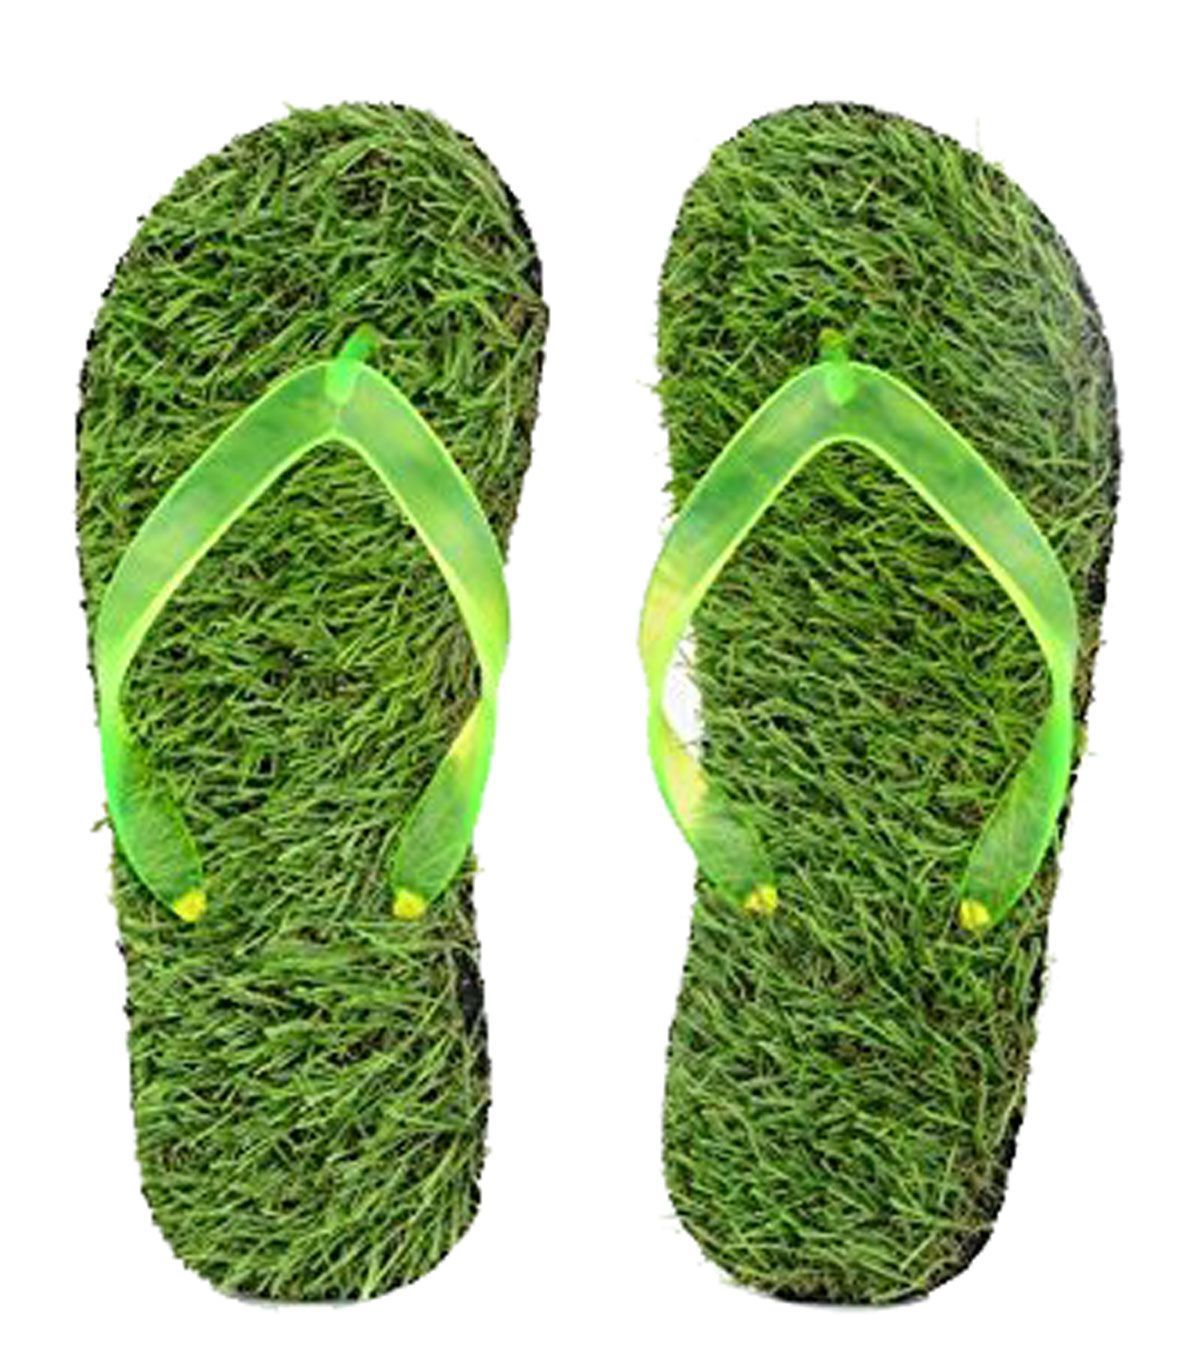 29b6330e8411 ILU ILU Grass Slipper Slipper for Men Green Daily Slippers Price in India-  Buy ILU ILU Grass Slipper Slipper for Men Green Daily Slippers Online at  Snapdeal